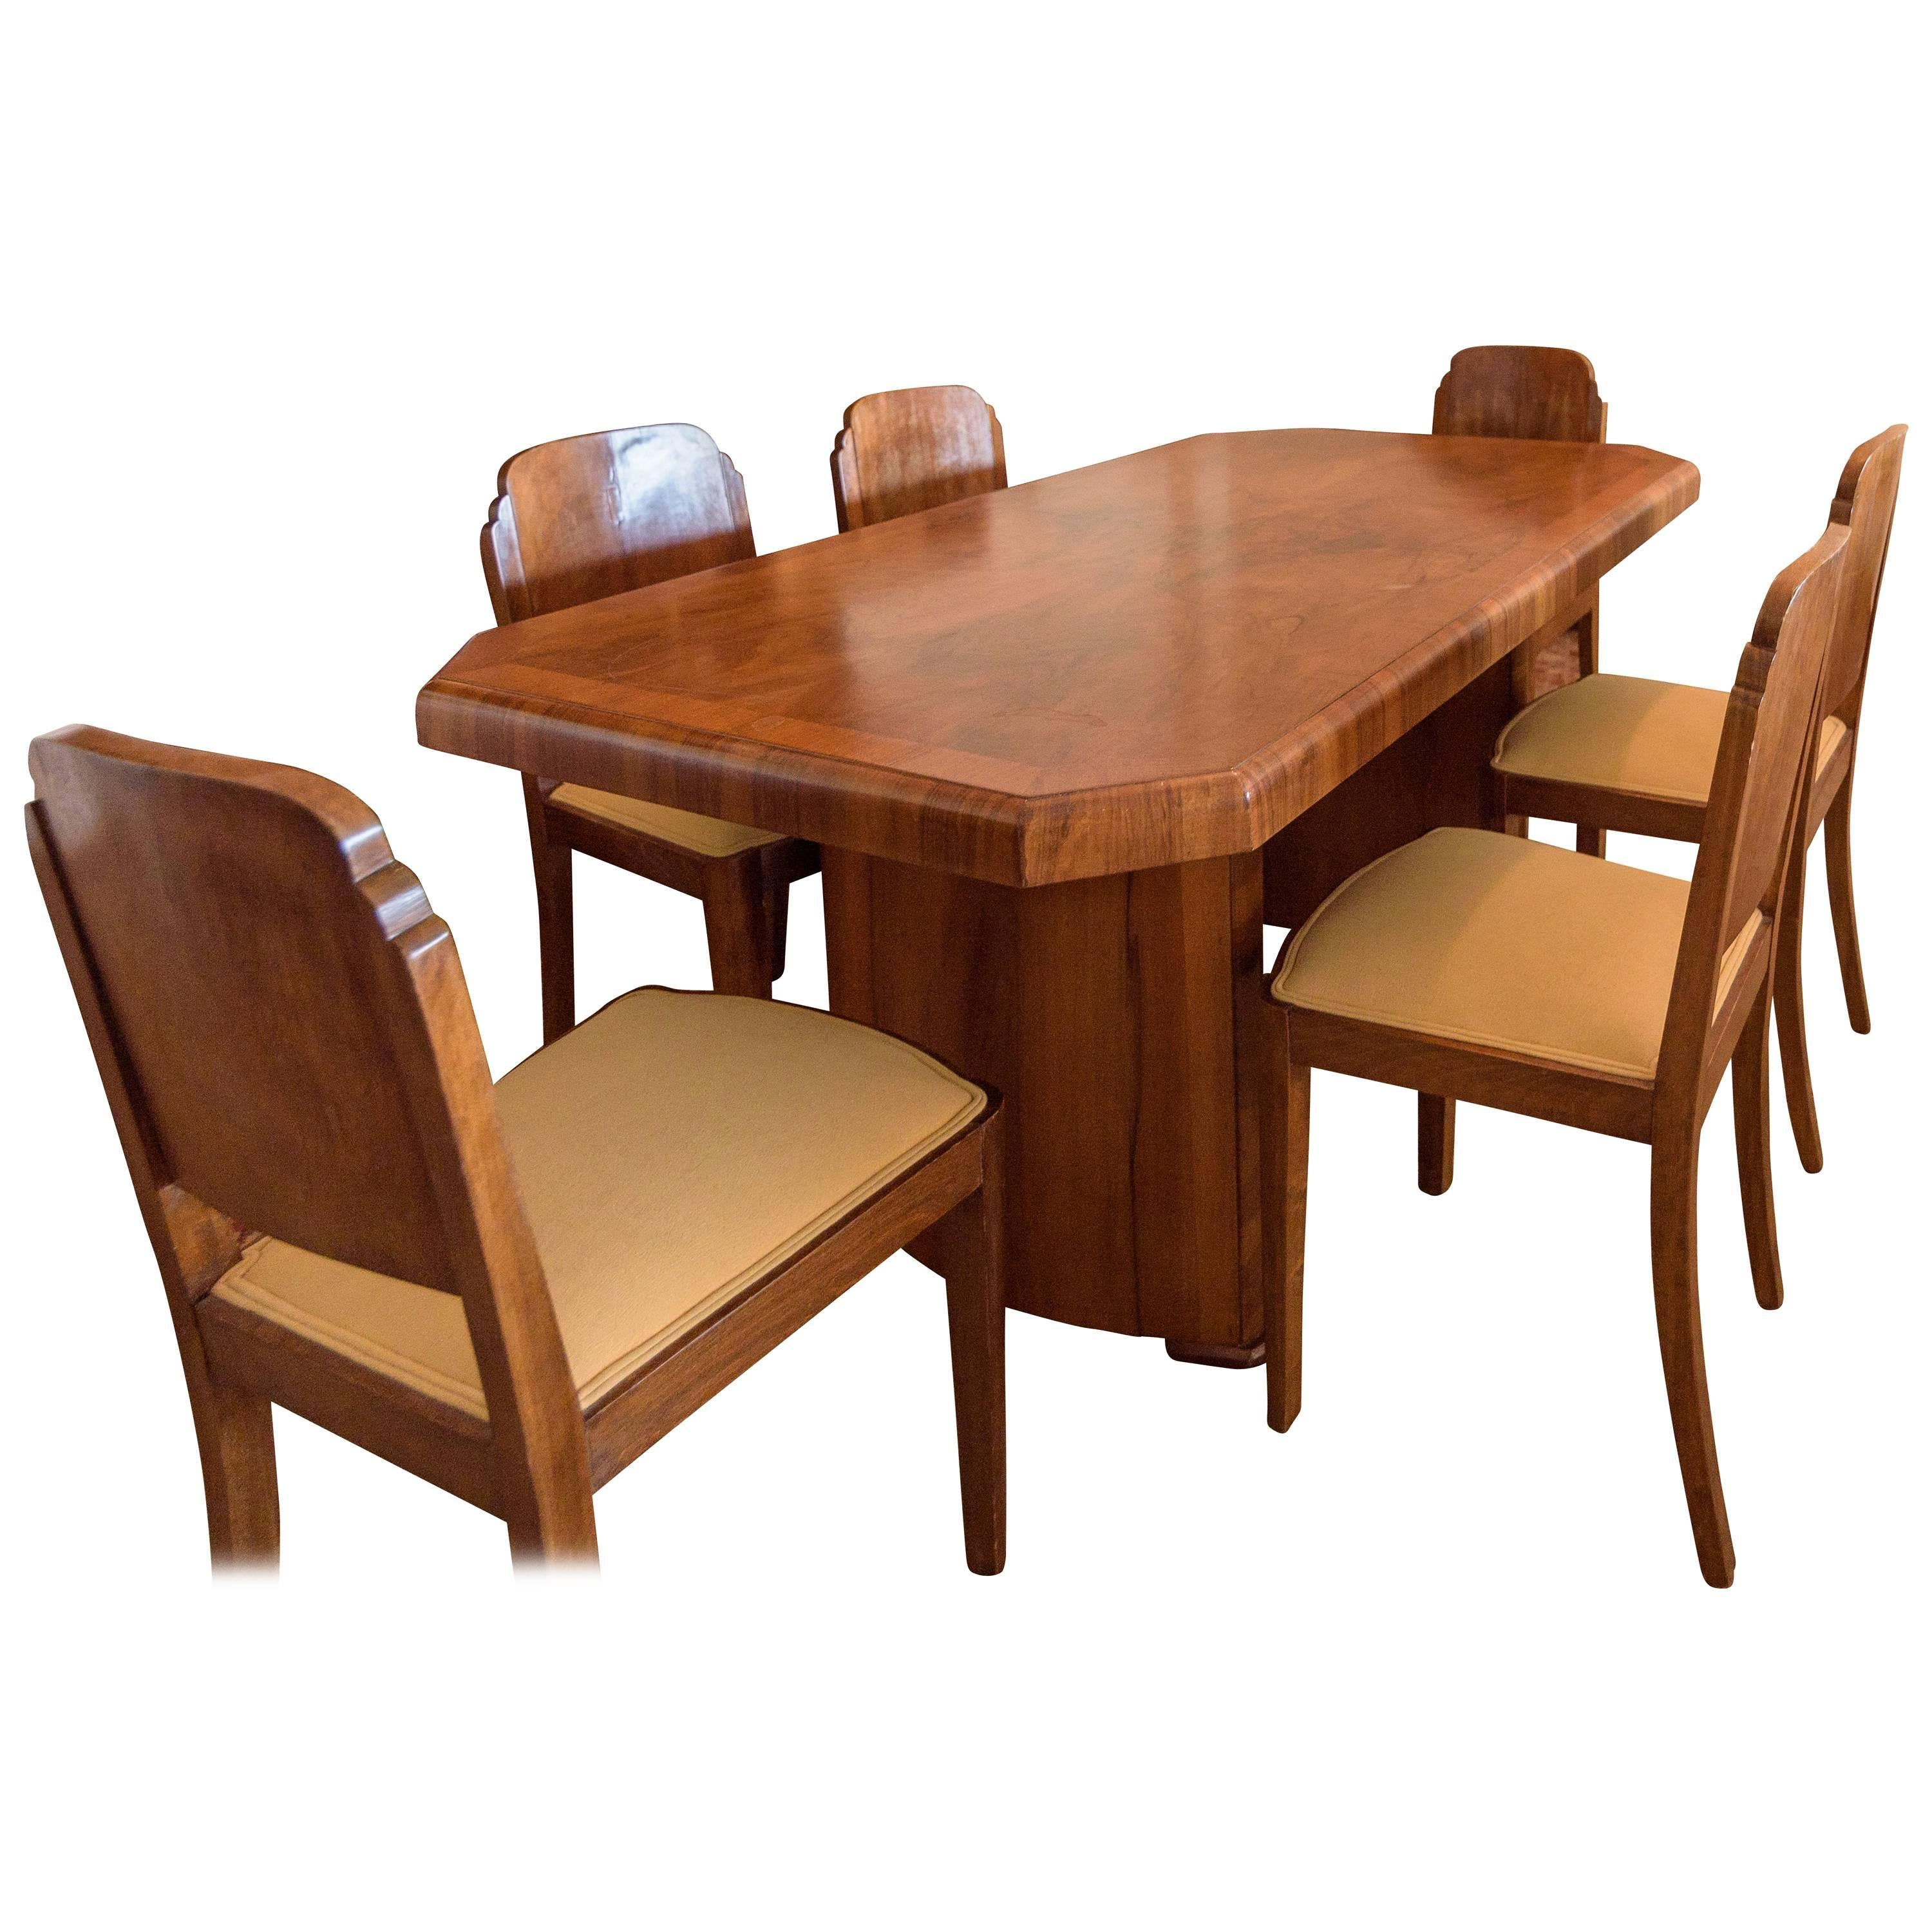 Beautiful Art Deco Dining Room Set Walnut